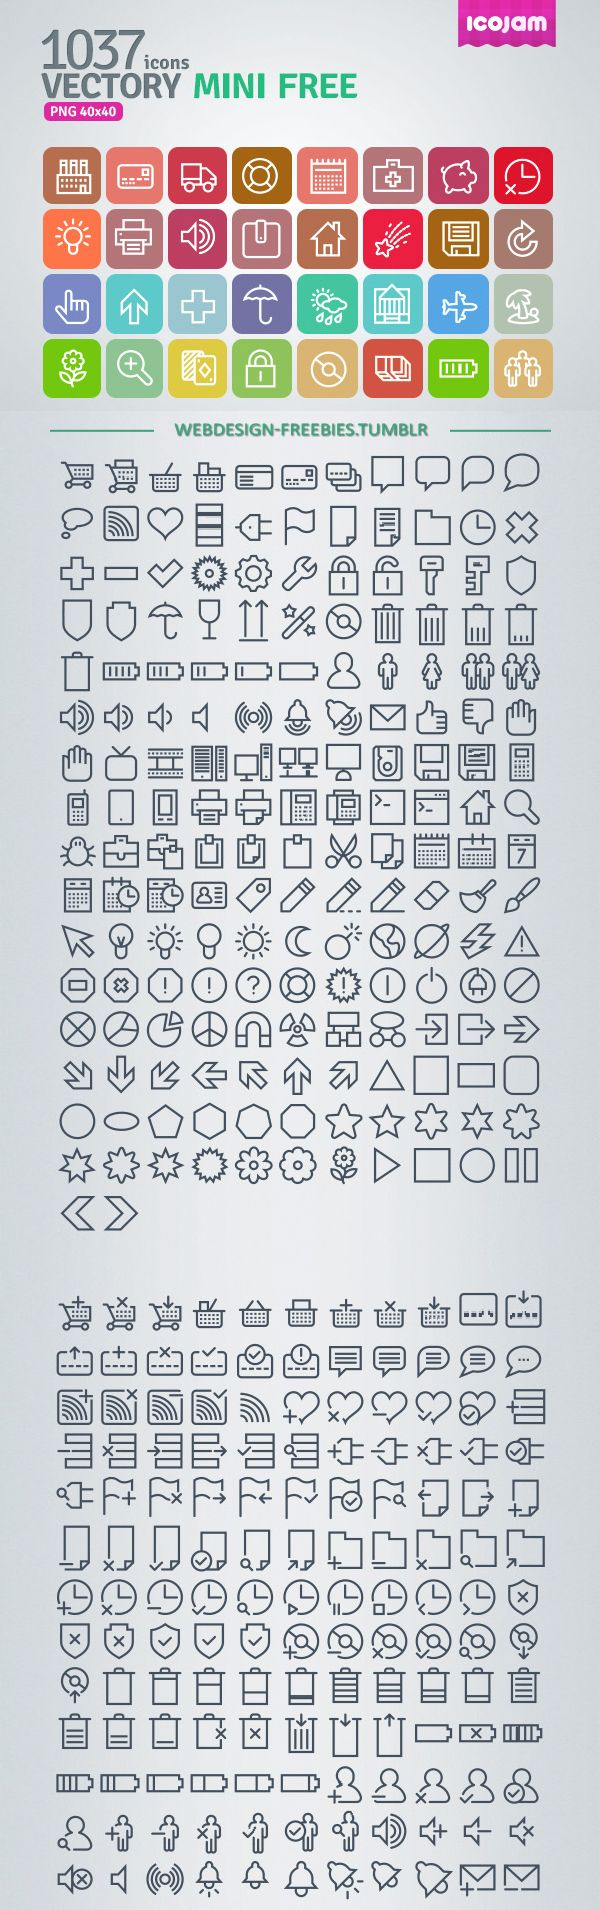 1037-Vectory-Mini-Free-Icons